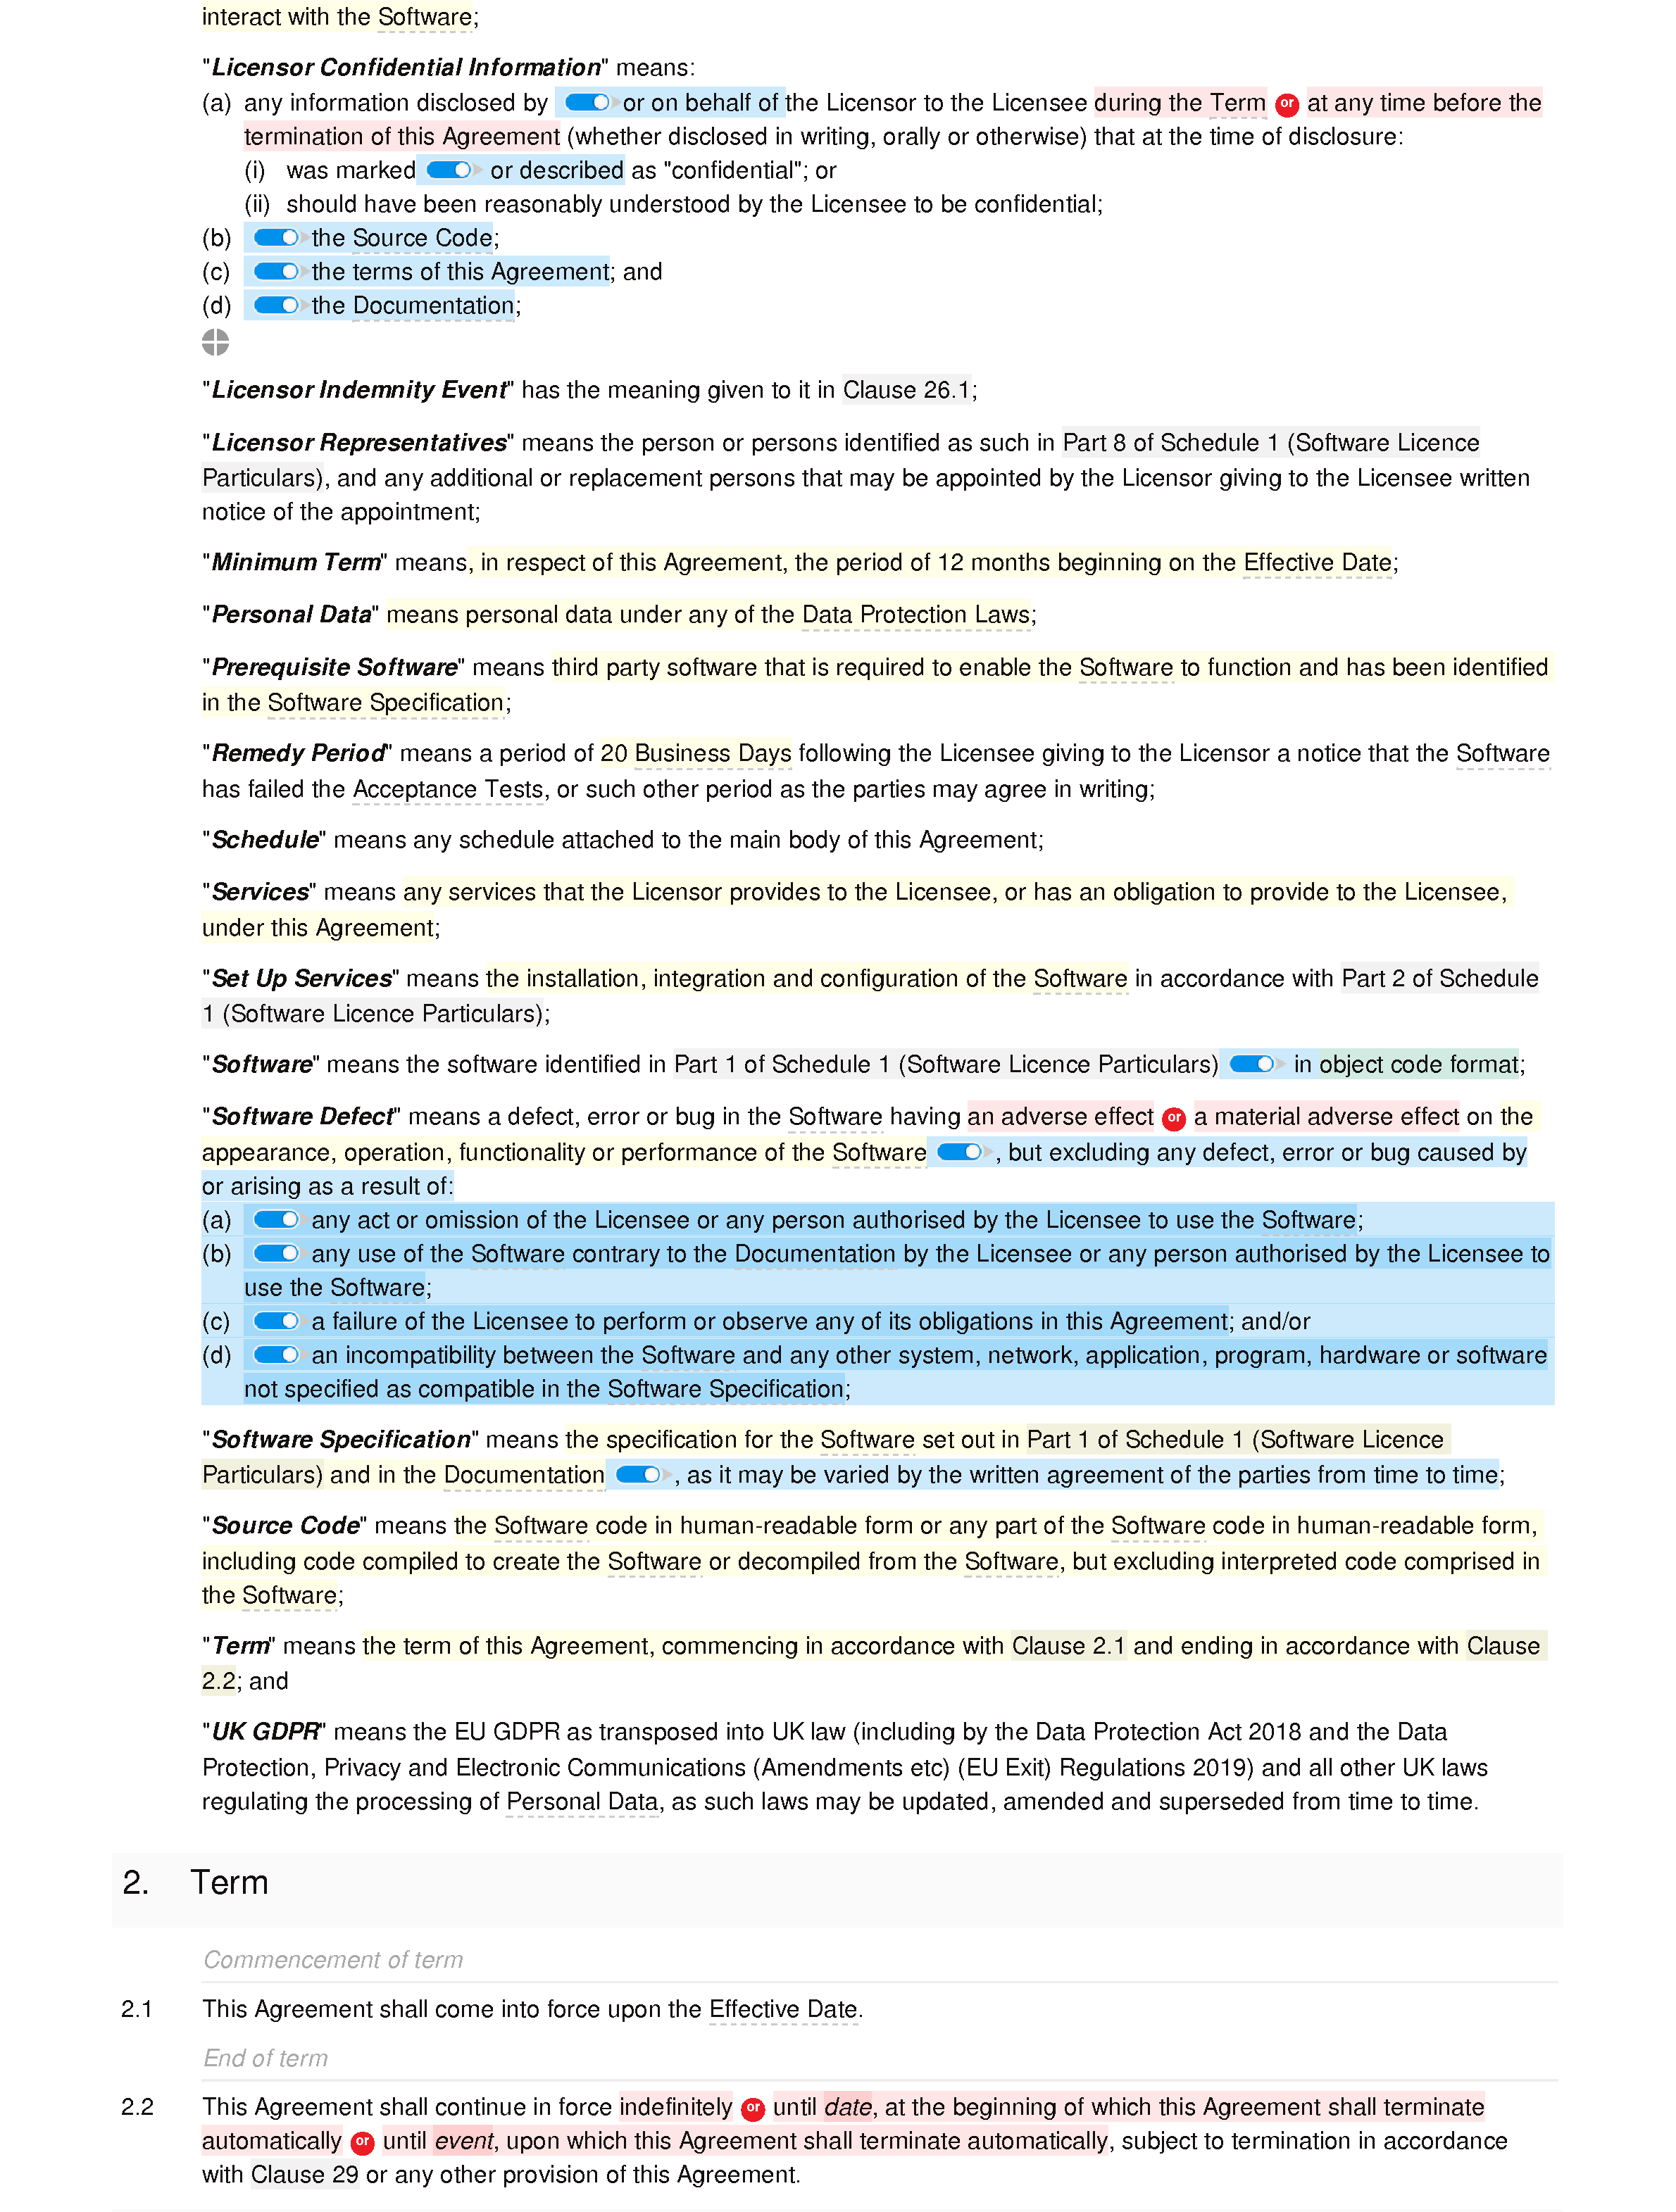 Software licence agreement (premium) document editor preview